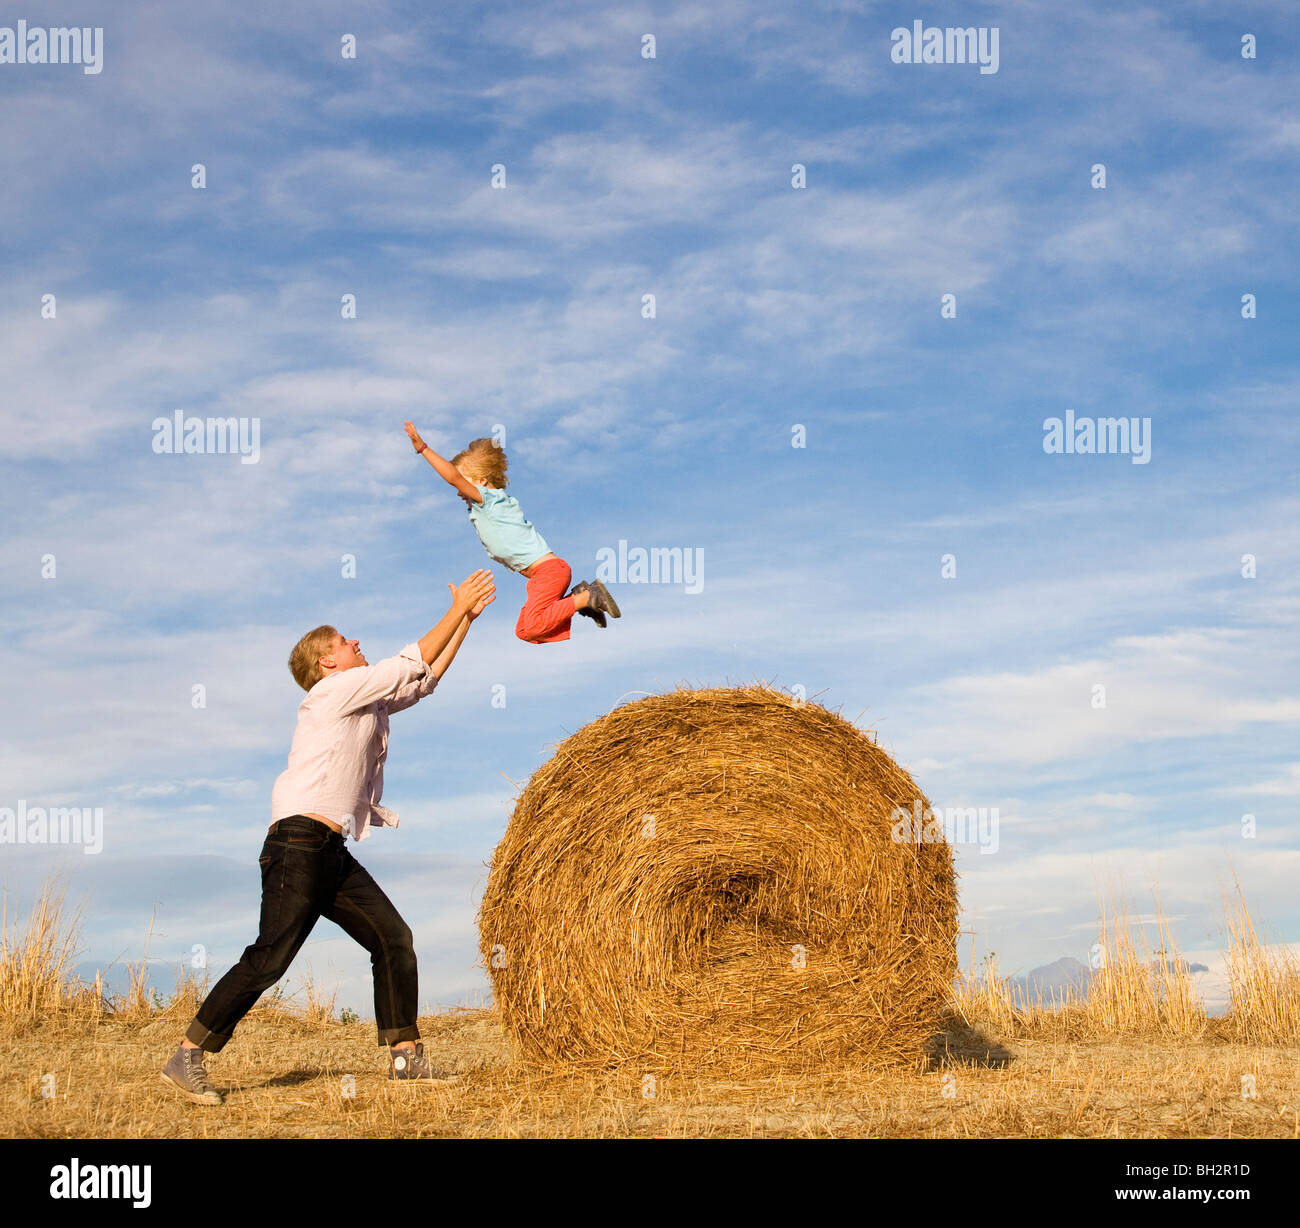 man catching boy jumping from hay bale Stock Foto